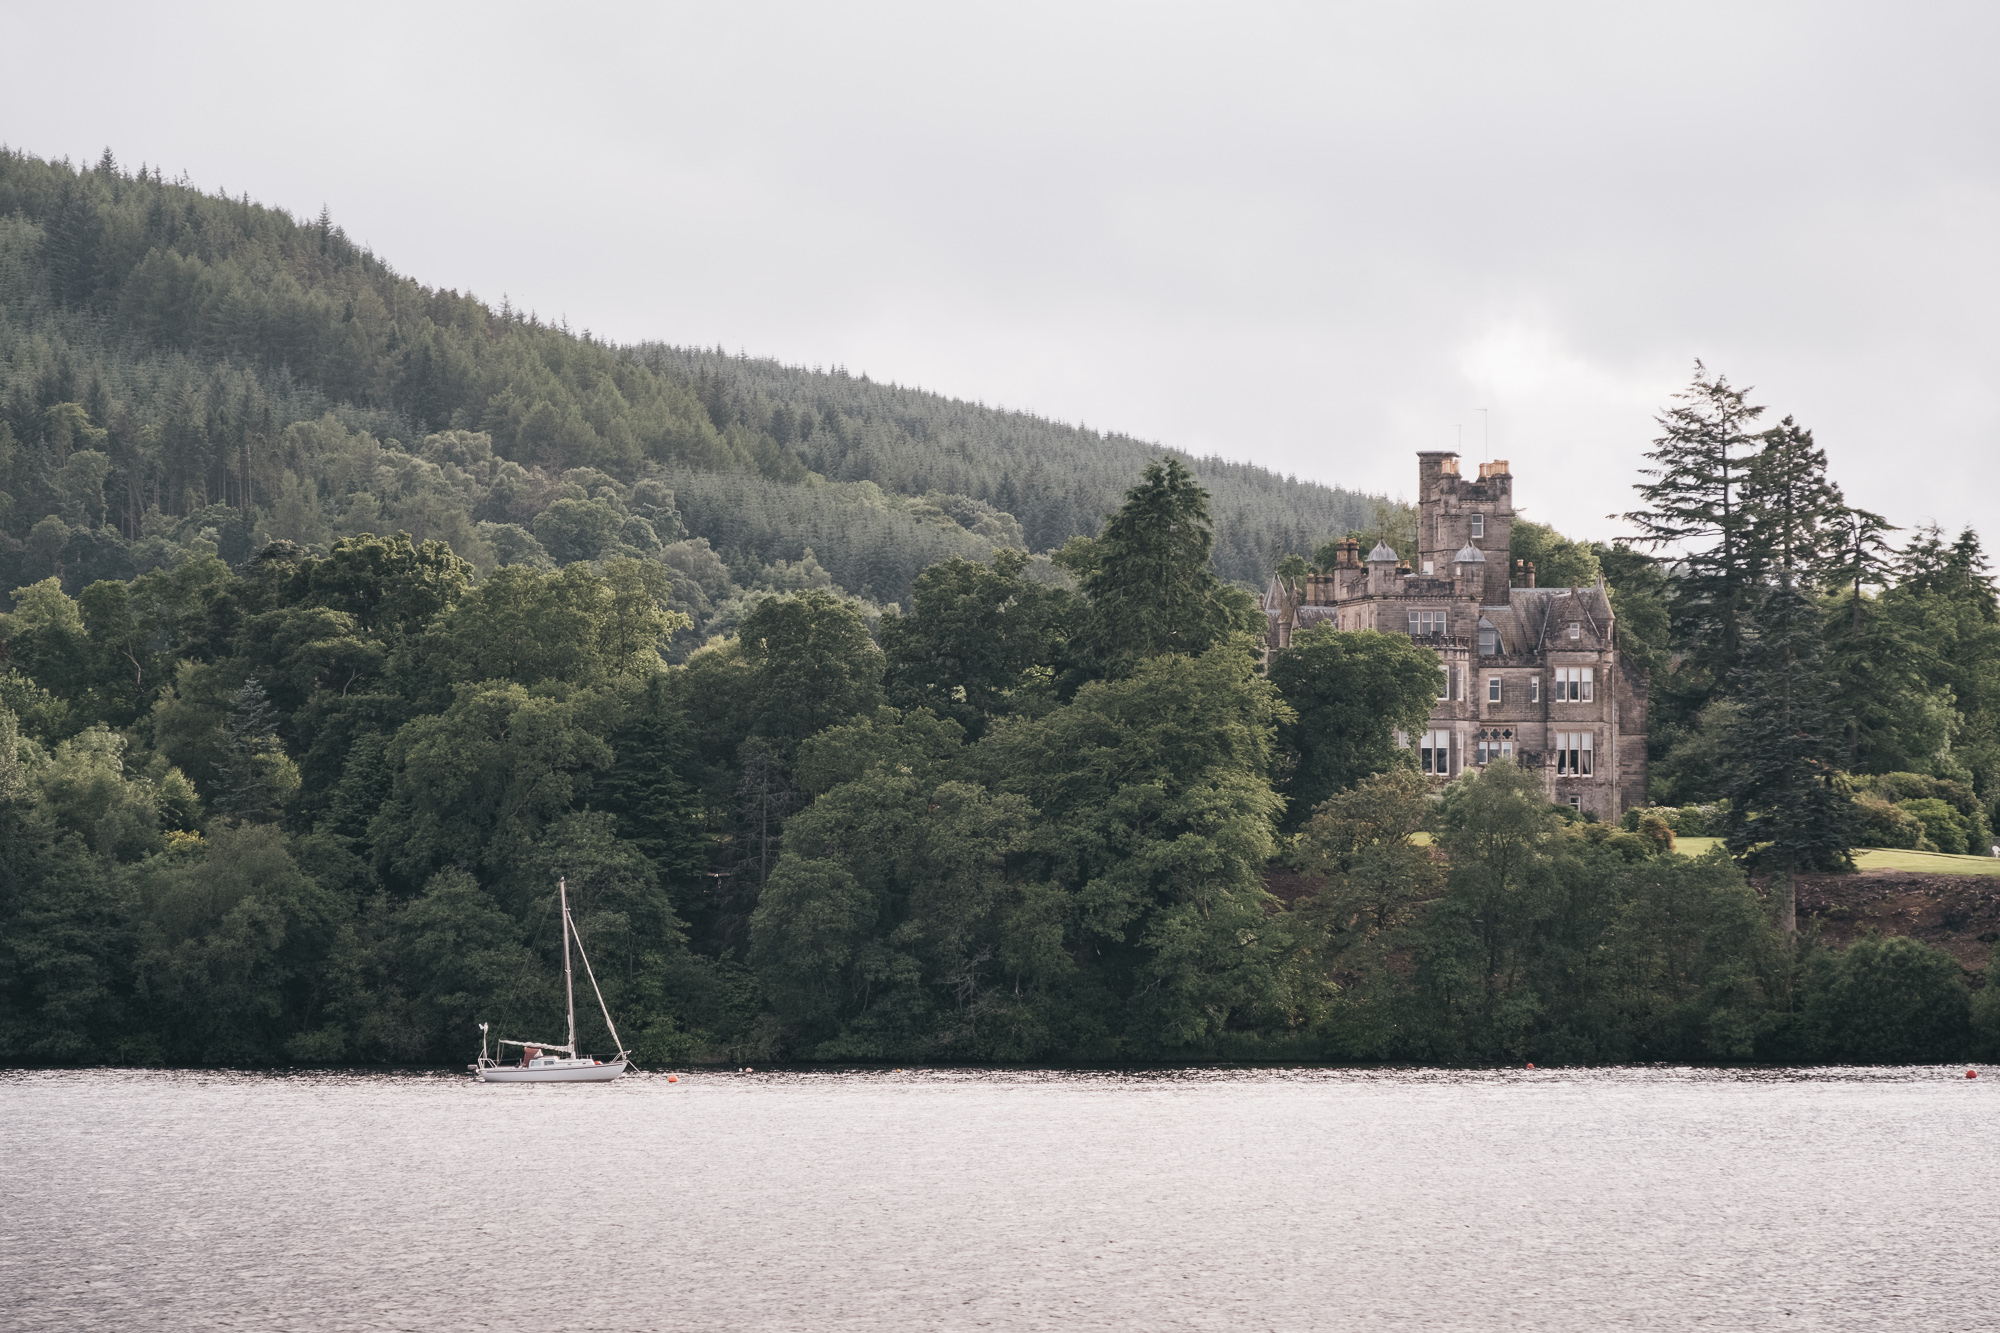 There is so many Mansion Houses dotted around the Loch Lomomd